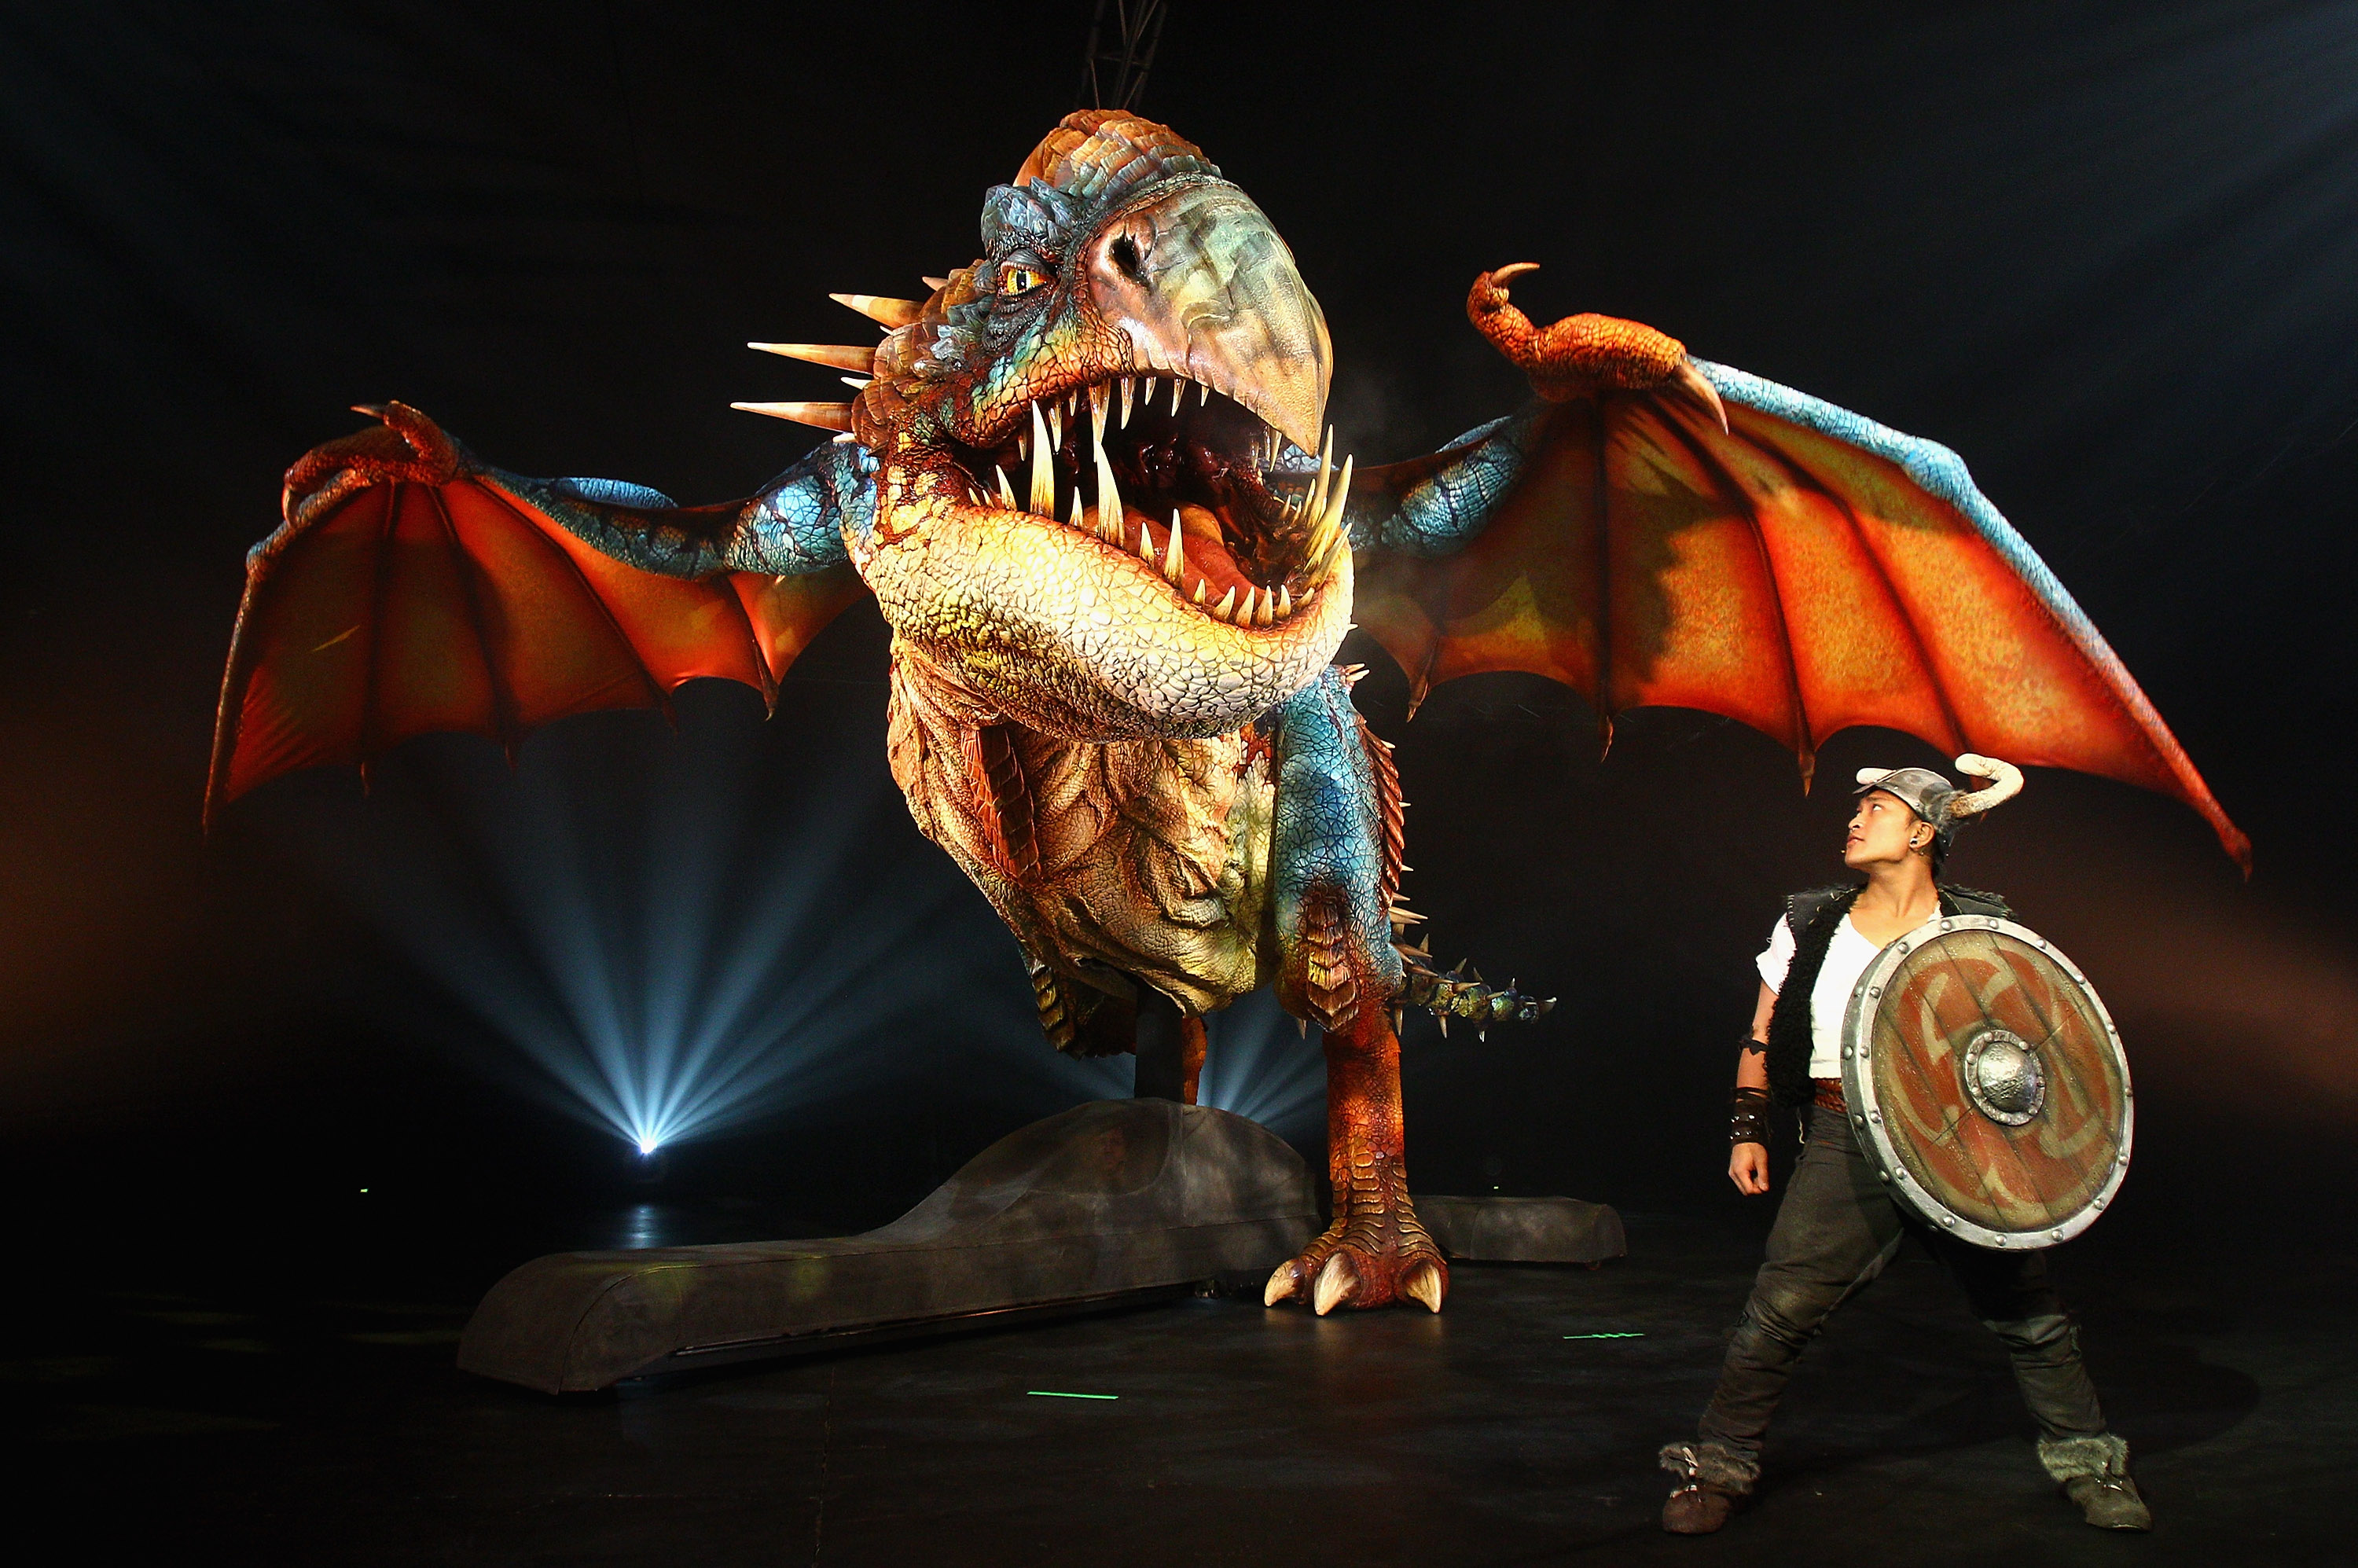 Deadly Nadder Dragon How To Train Your Dragon Arena Spectacular